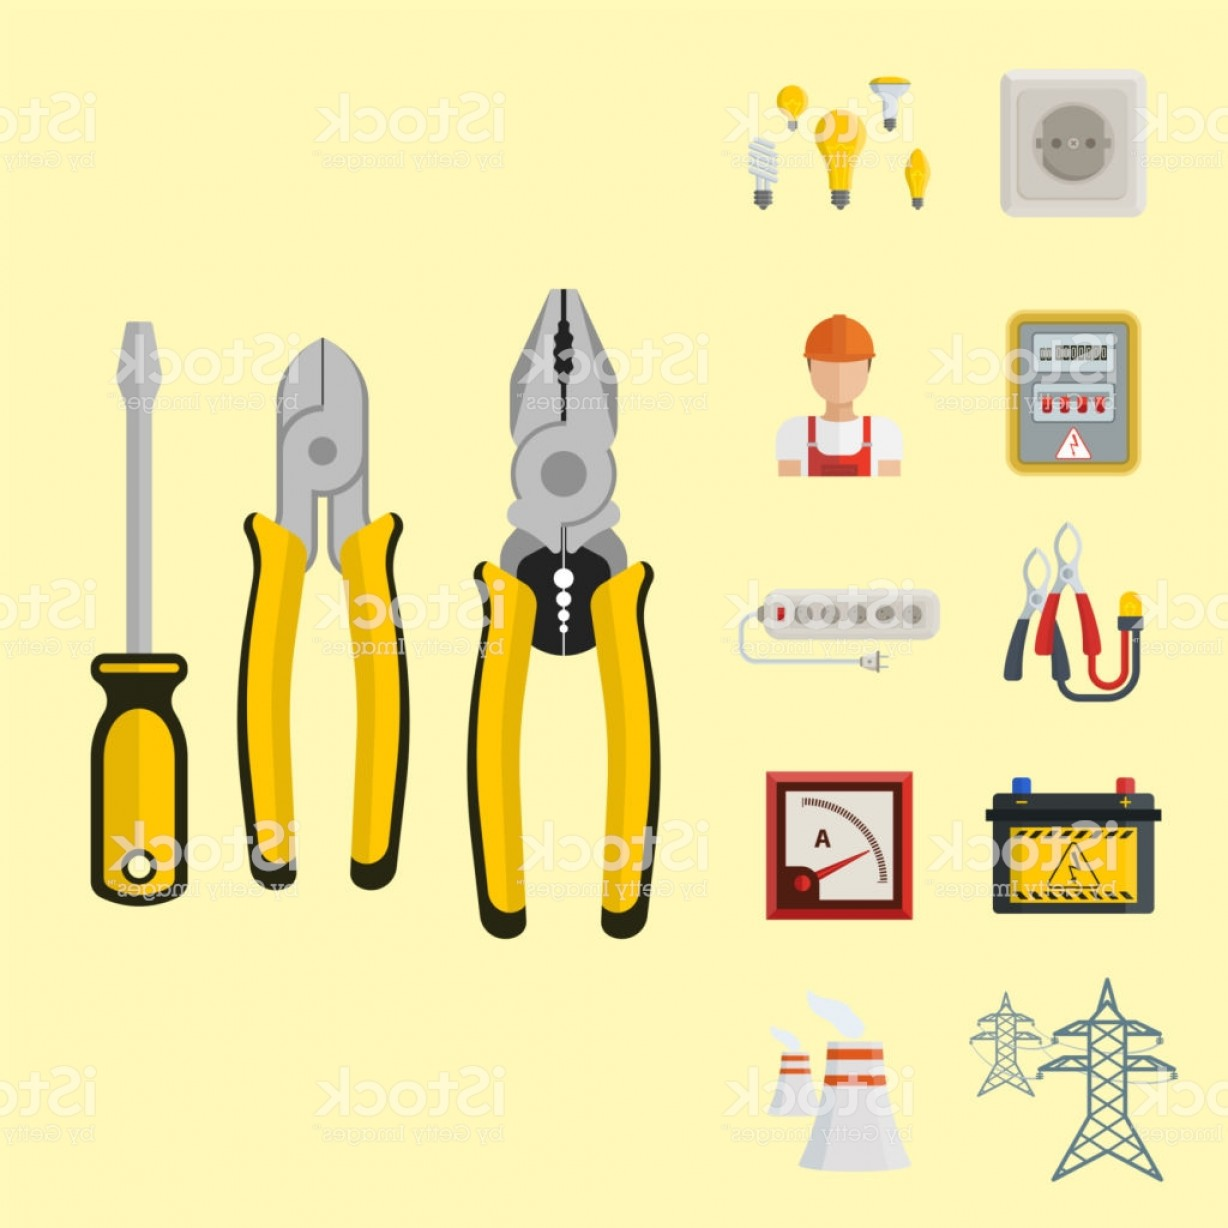 Battery Electricity Vector Images: Energy Electricity Vector Power Icons Battery Illustration Industrial Electrician Gm